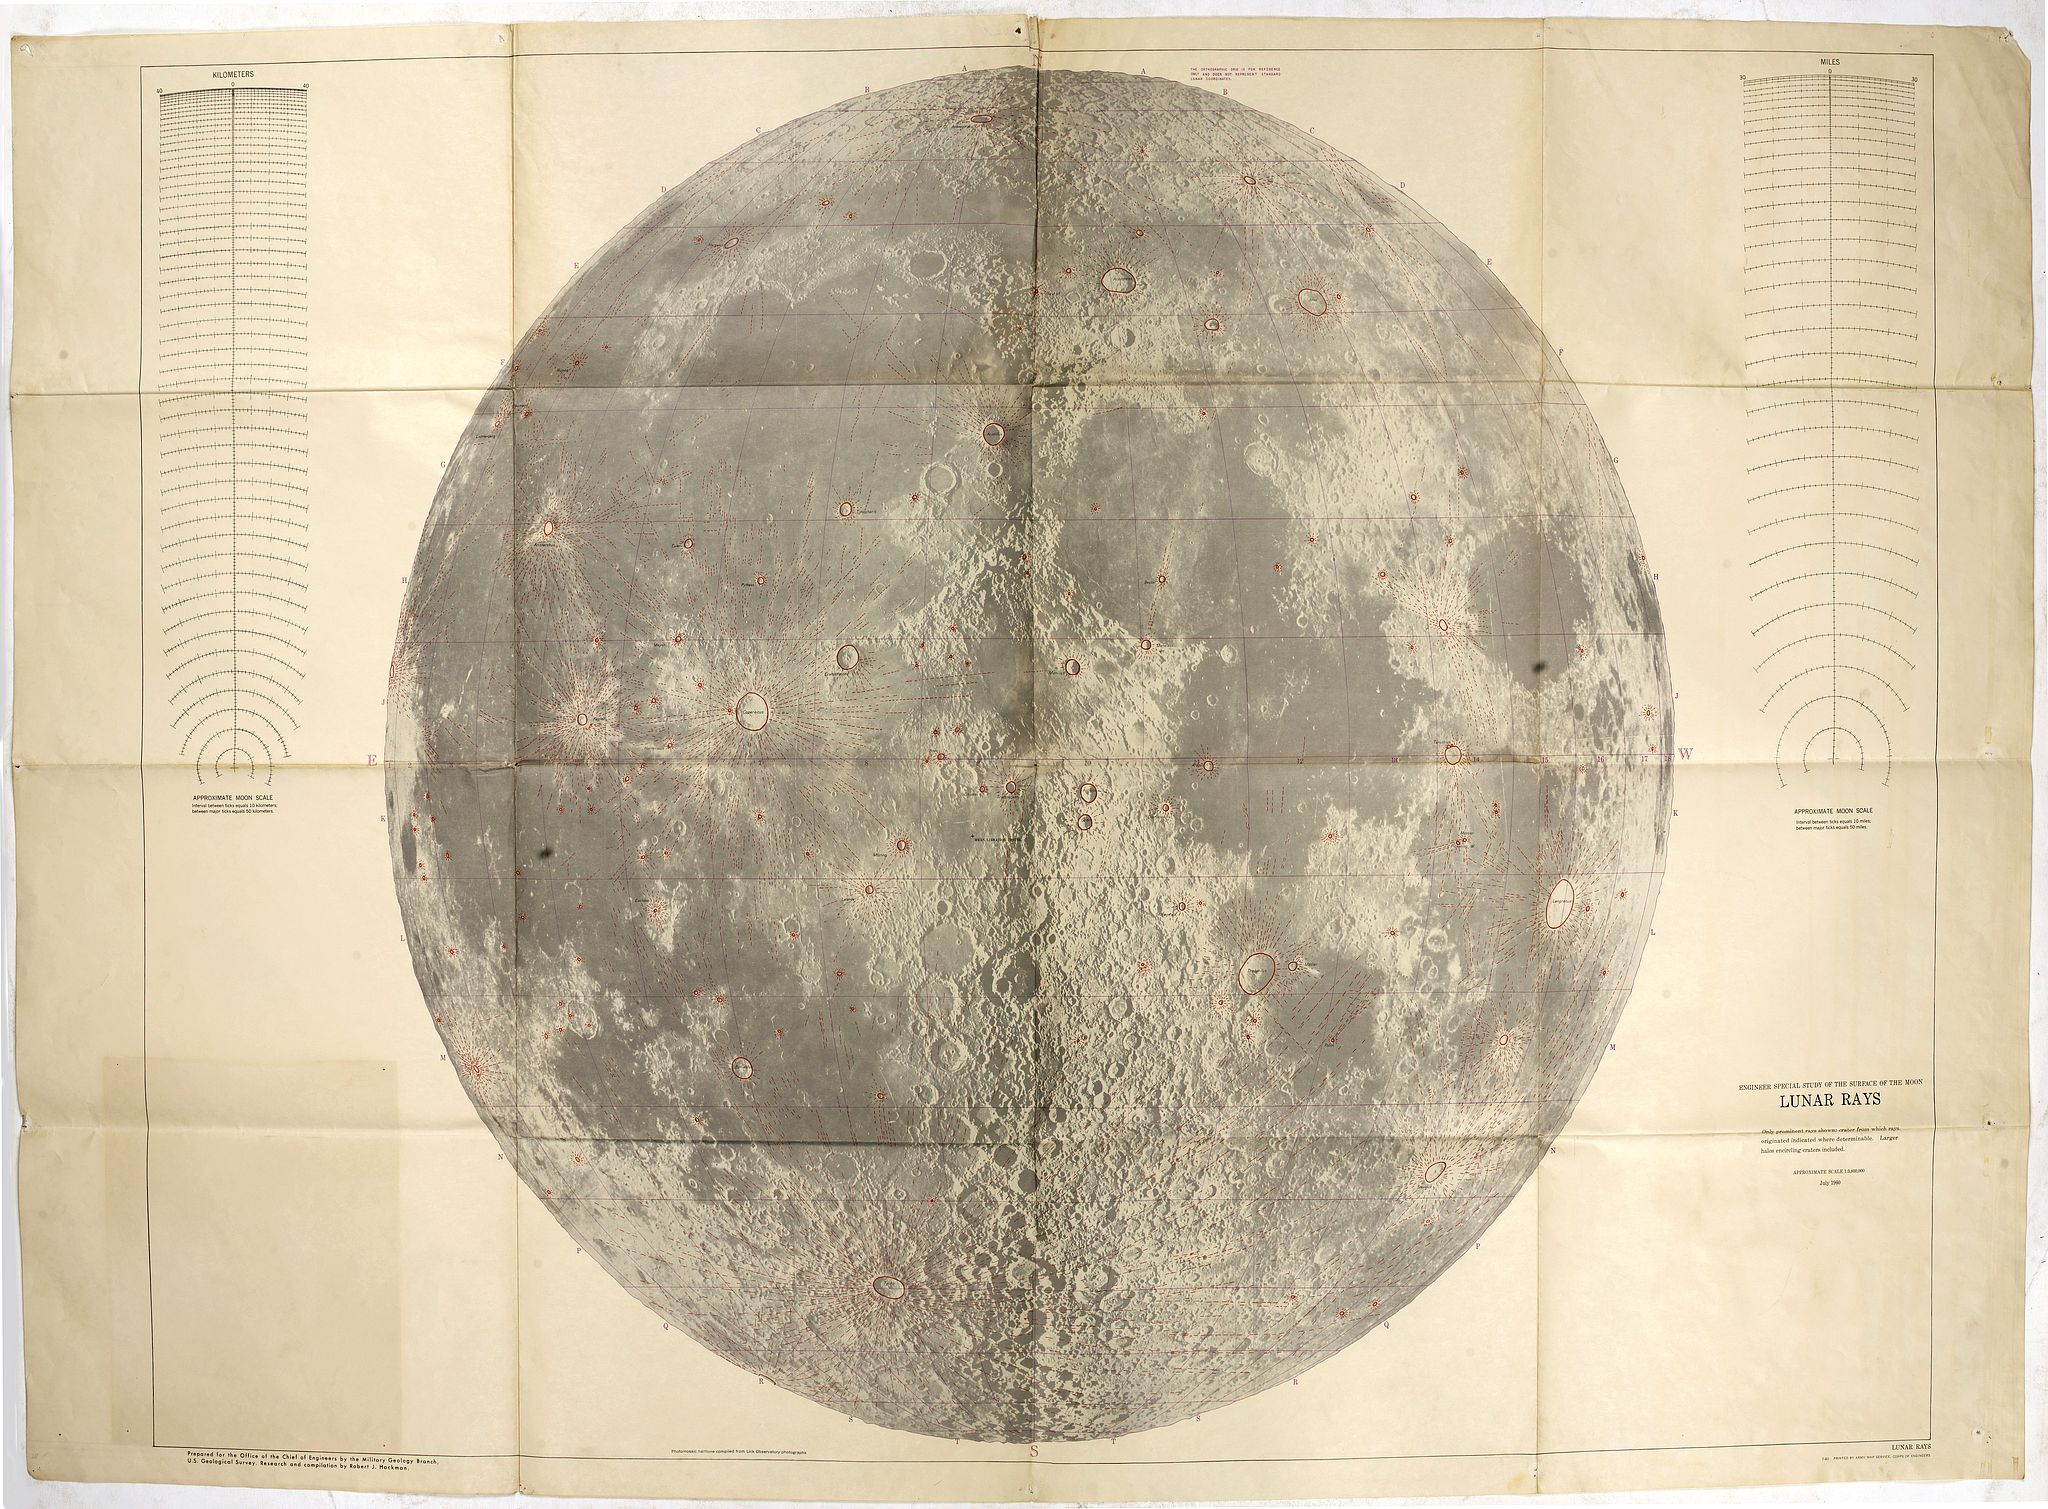 ARMY MAP SERVICE -  Engeneer special study of the surface of the moon LUNAR RAYS